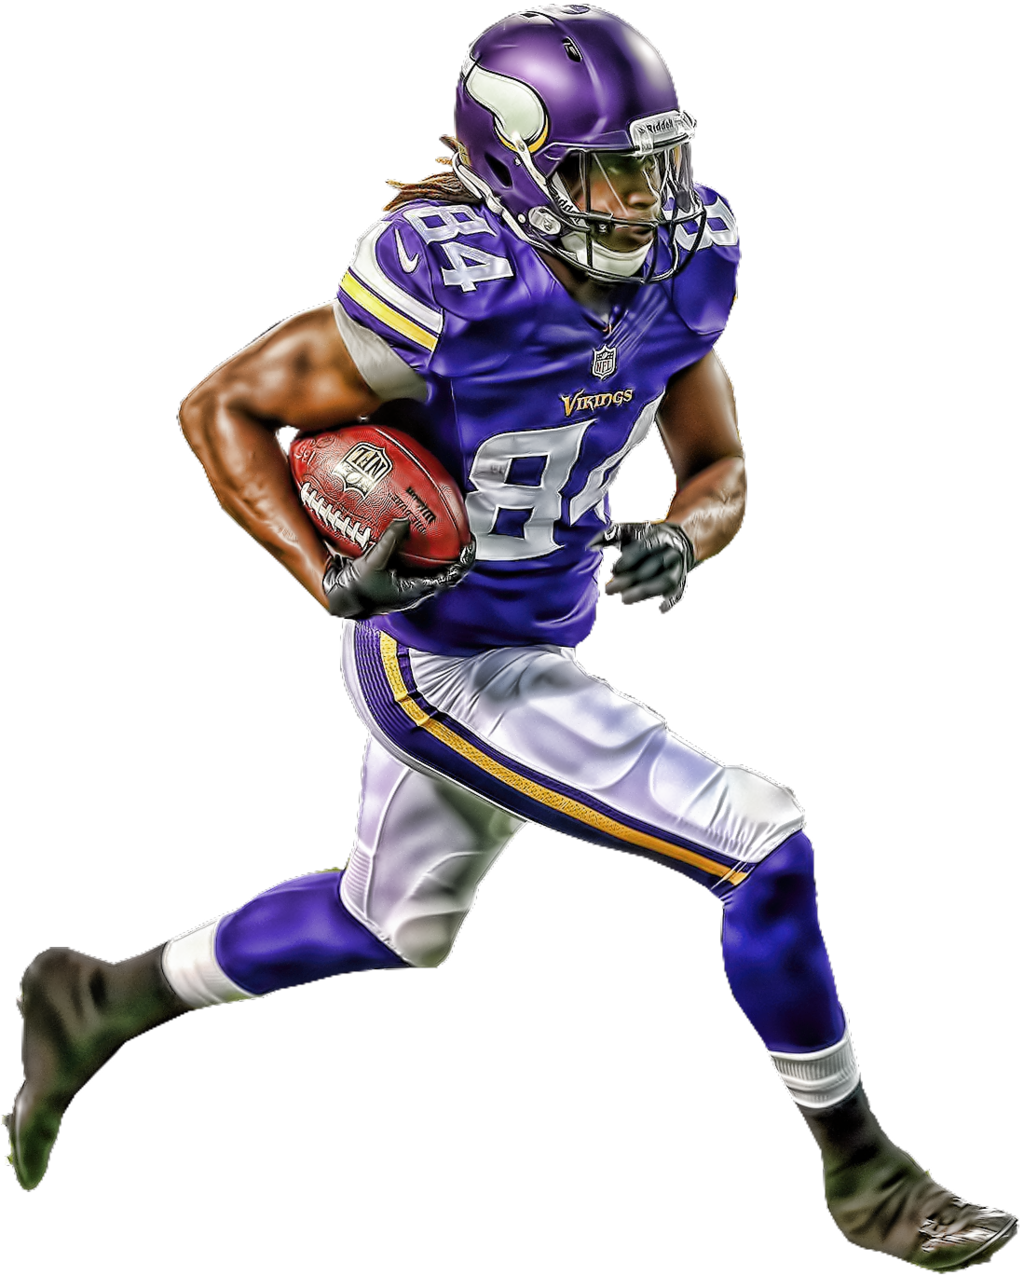 Nfl png players. American football